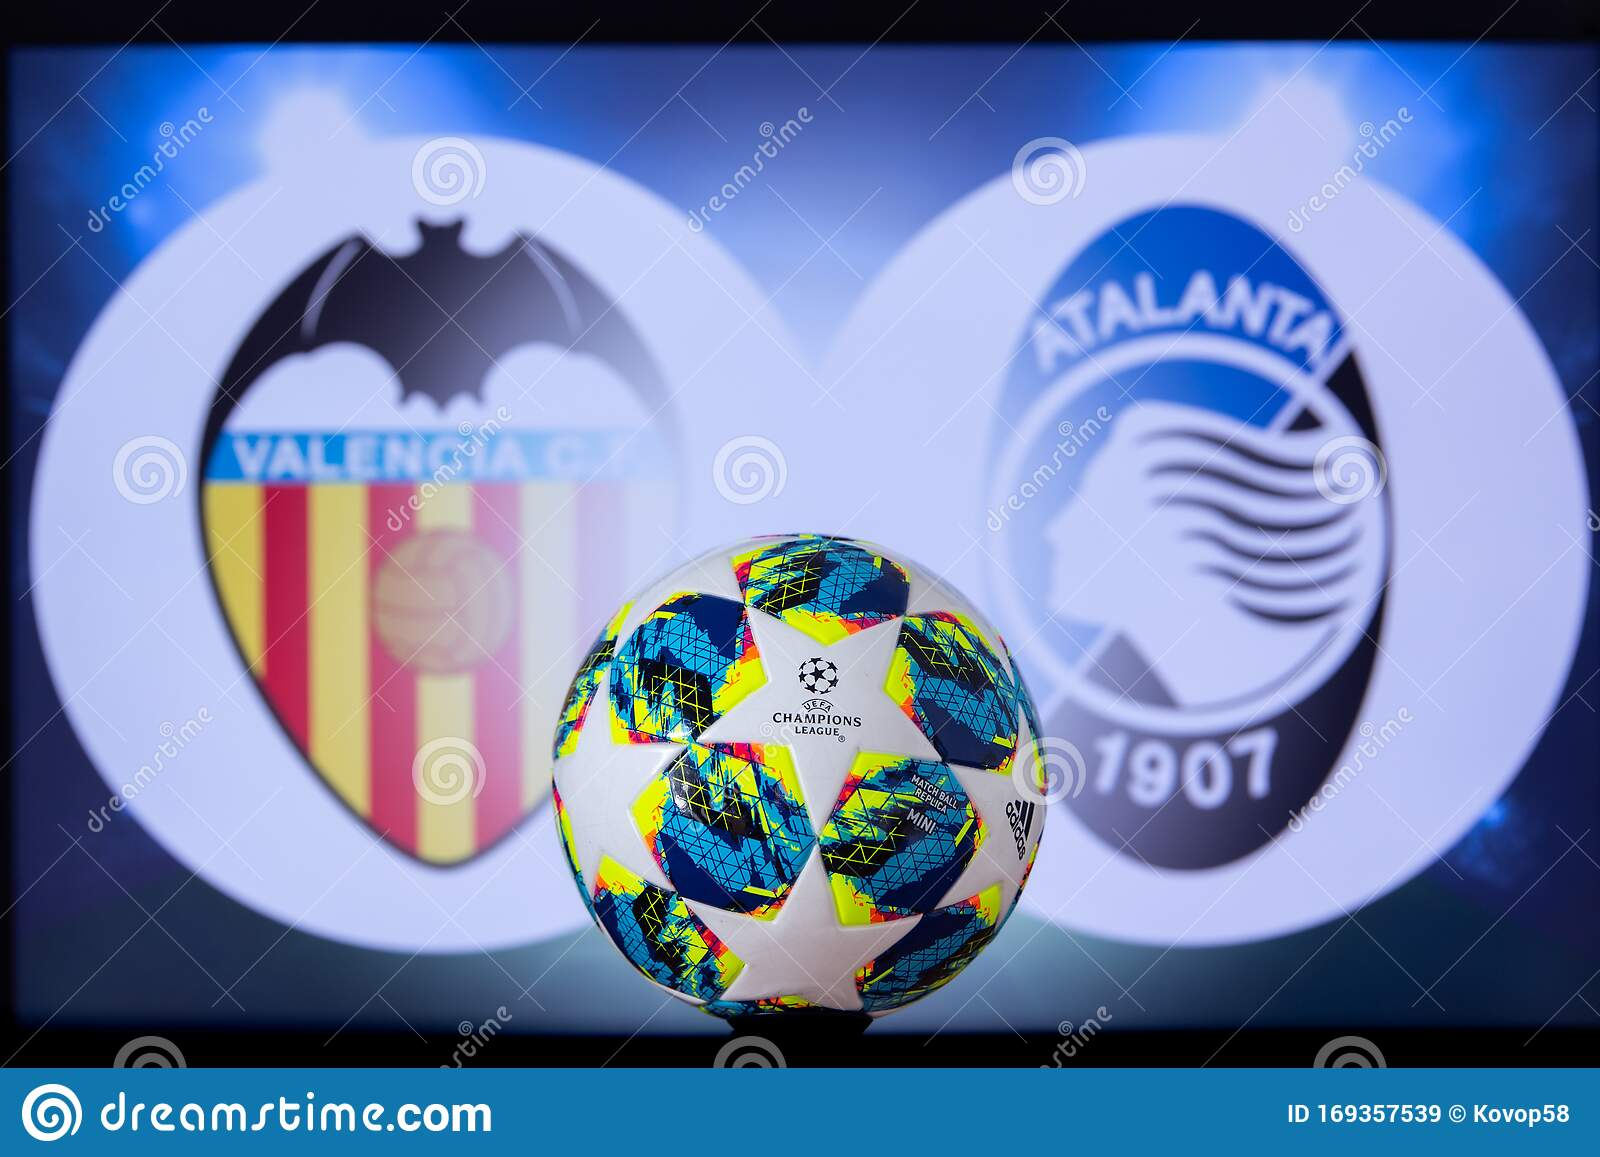 uefa champions league 2020 round of 16 ucl football knockout stage playoff official adidas soccer ball 2020 editorial stock image image of logo design 169357539 dreamstime com